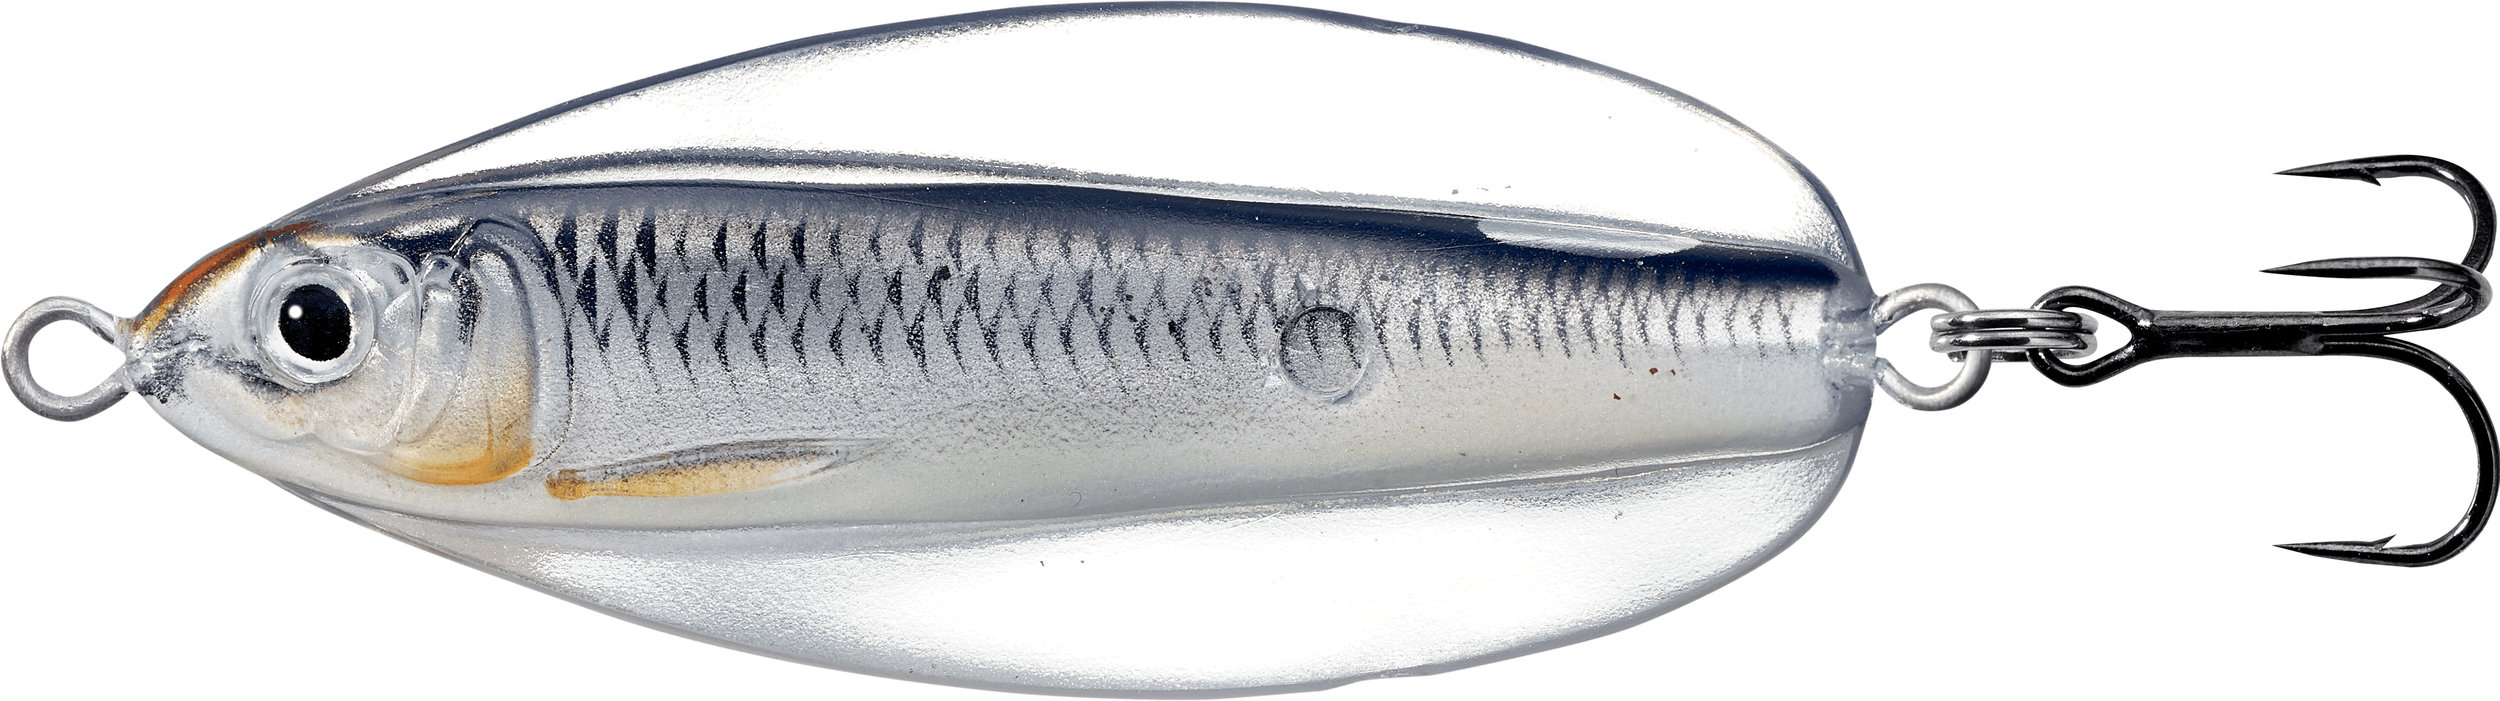 Booth 2508. LIVETARGET's Erratic Shiner behaves like a traditional casting spoon but has the narrow profile of a common shiner or minnow. With Injected Core Technology™ (ICT), the lure has a lifelike Inner-Core that mimics a small fleeing baitfish, while the Exo-Skin gives the lure an erratic wide-wobble action, bringing the Inner-Core to life – comes in 4 weights and 10 colors. MSRP: $9.99.